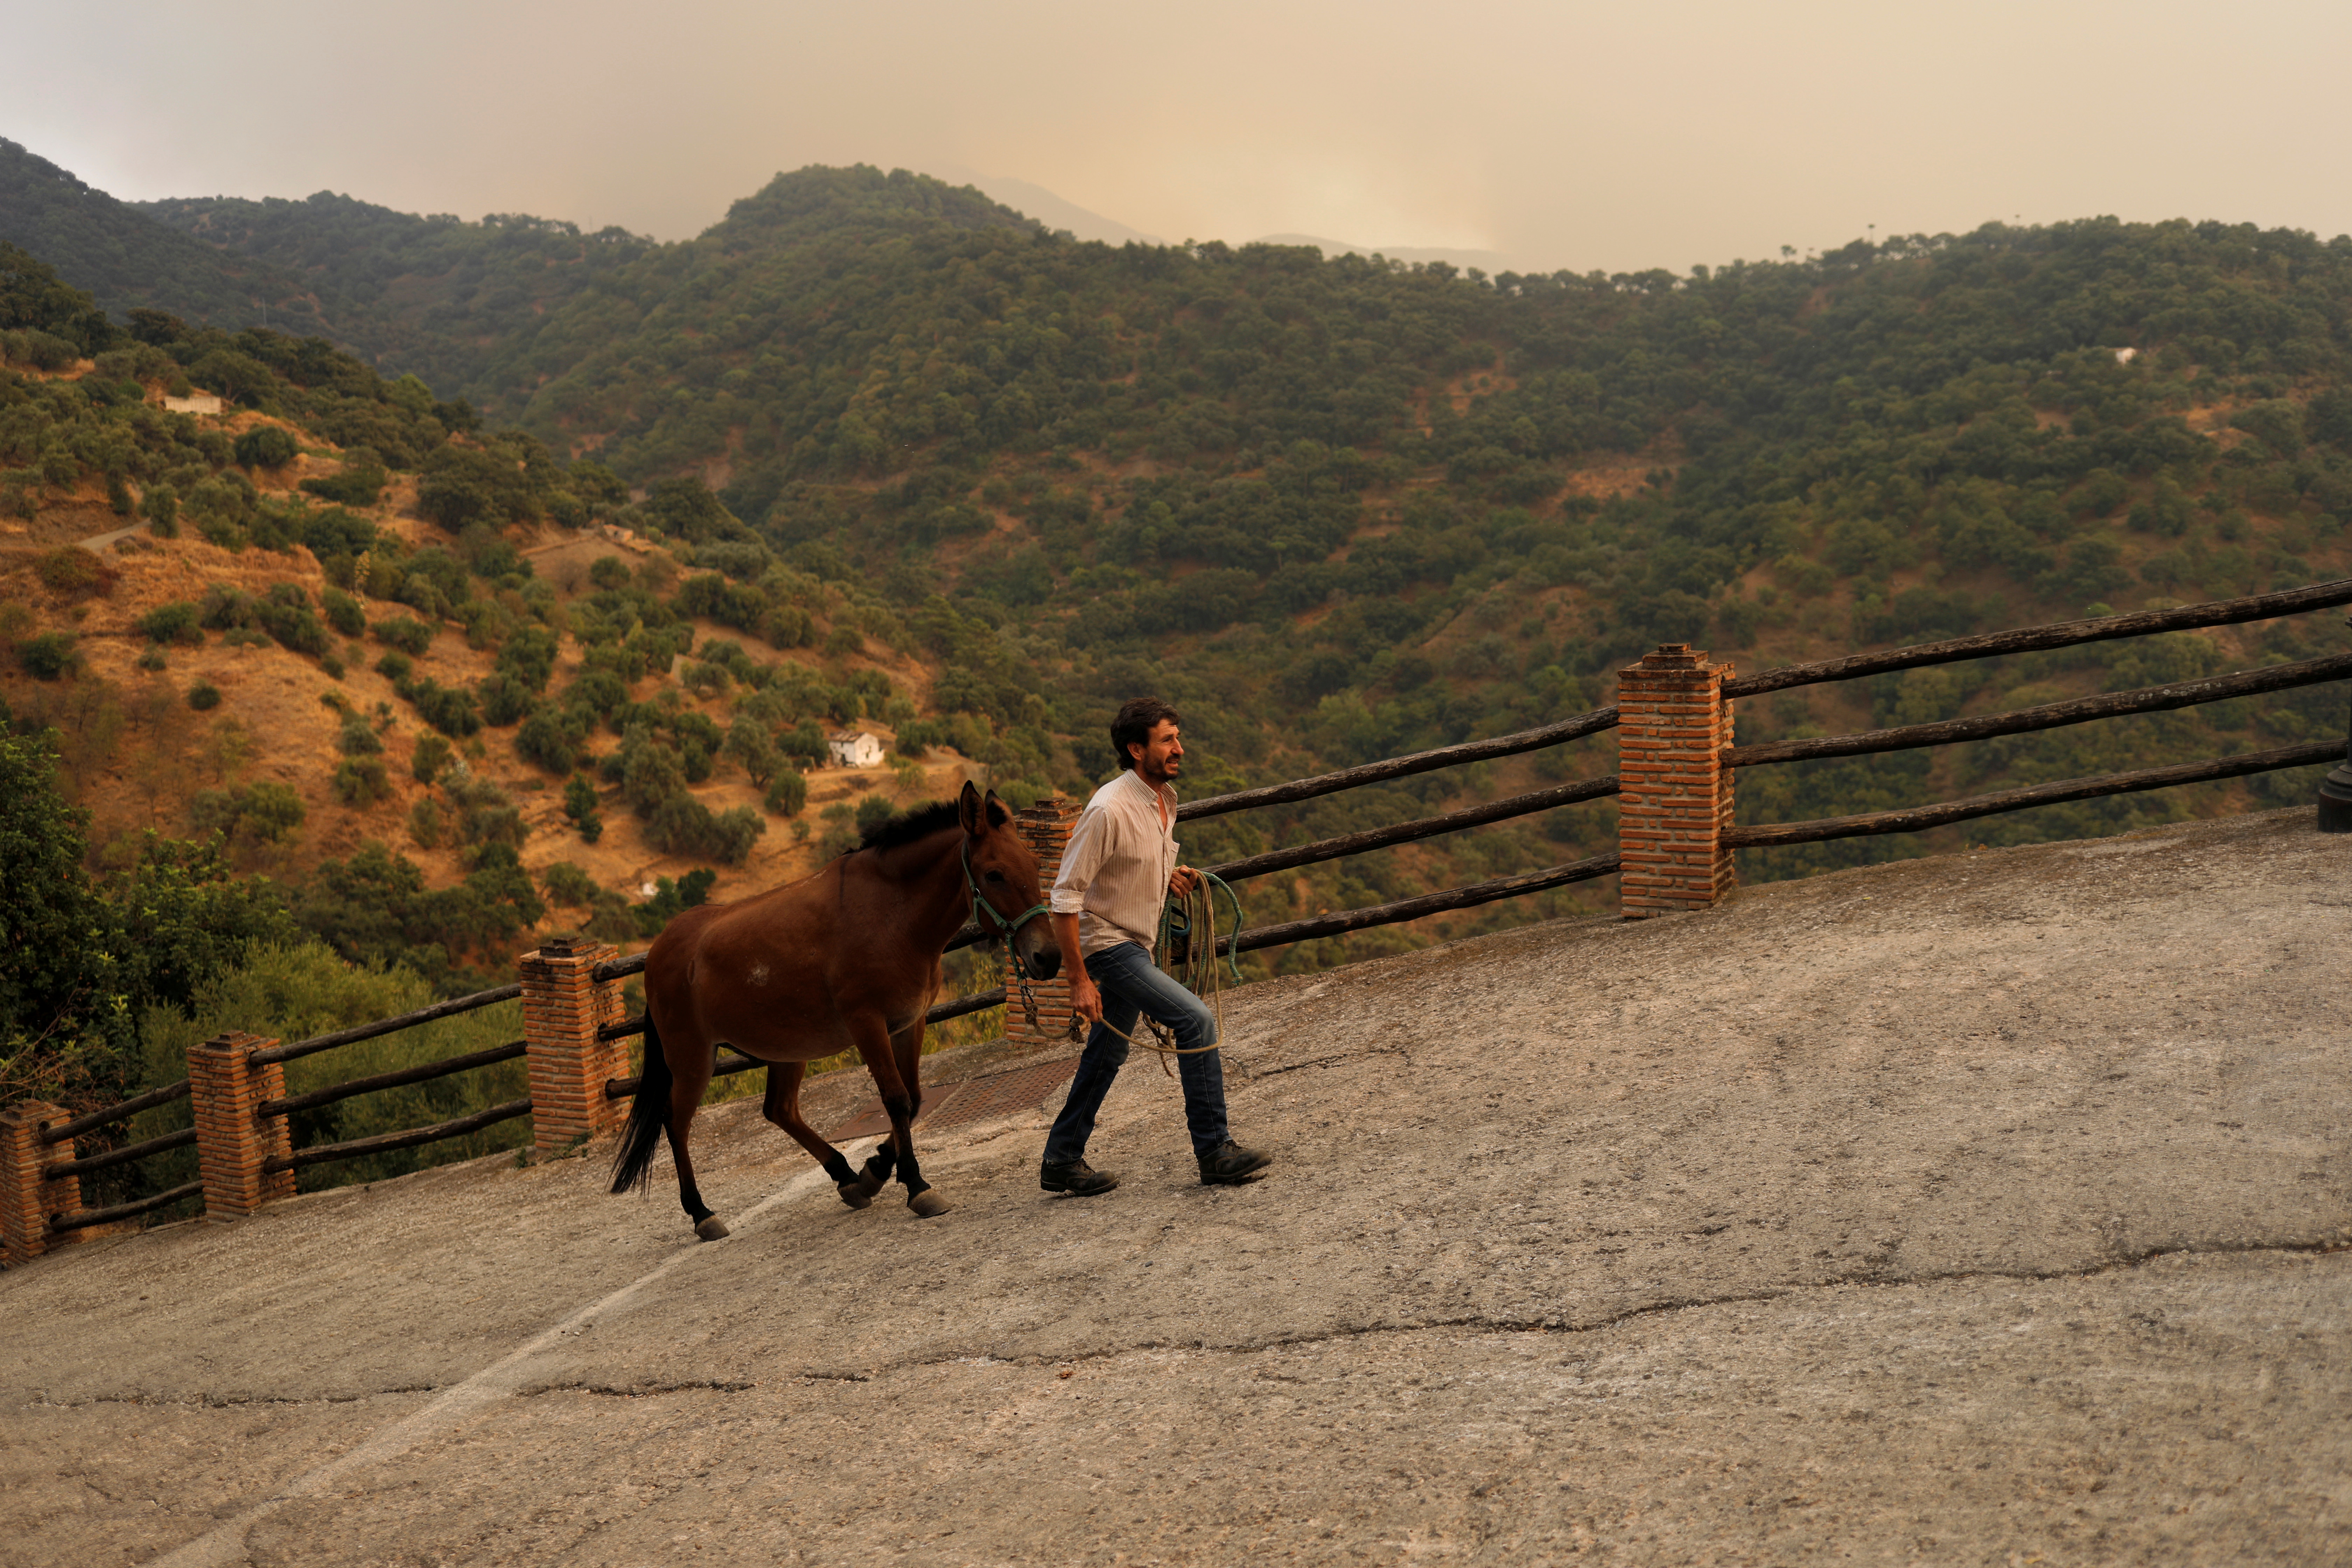 A man leads his horse from a field to a stable following an alert recommendation for residents to stay in their houses due to the smoke cloud from a wildfire on Sierra Bermeja mountain, in Genalguacil, near Estepona, Spain, September 11, 2021. REUTERS/Jon Nazca